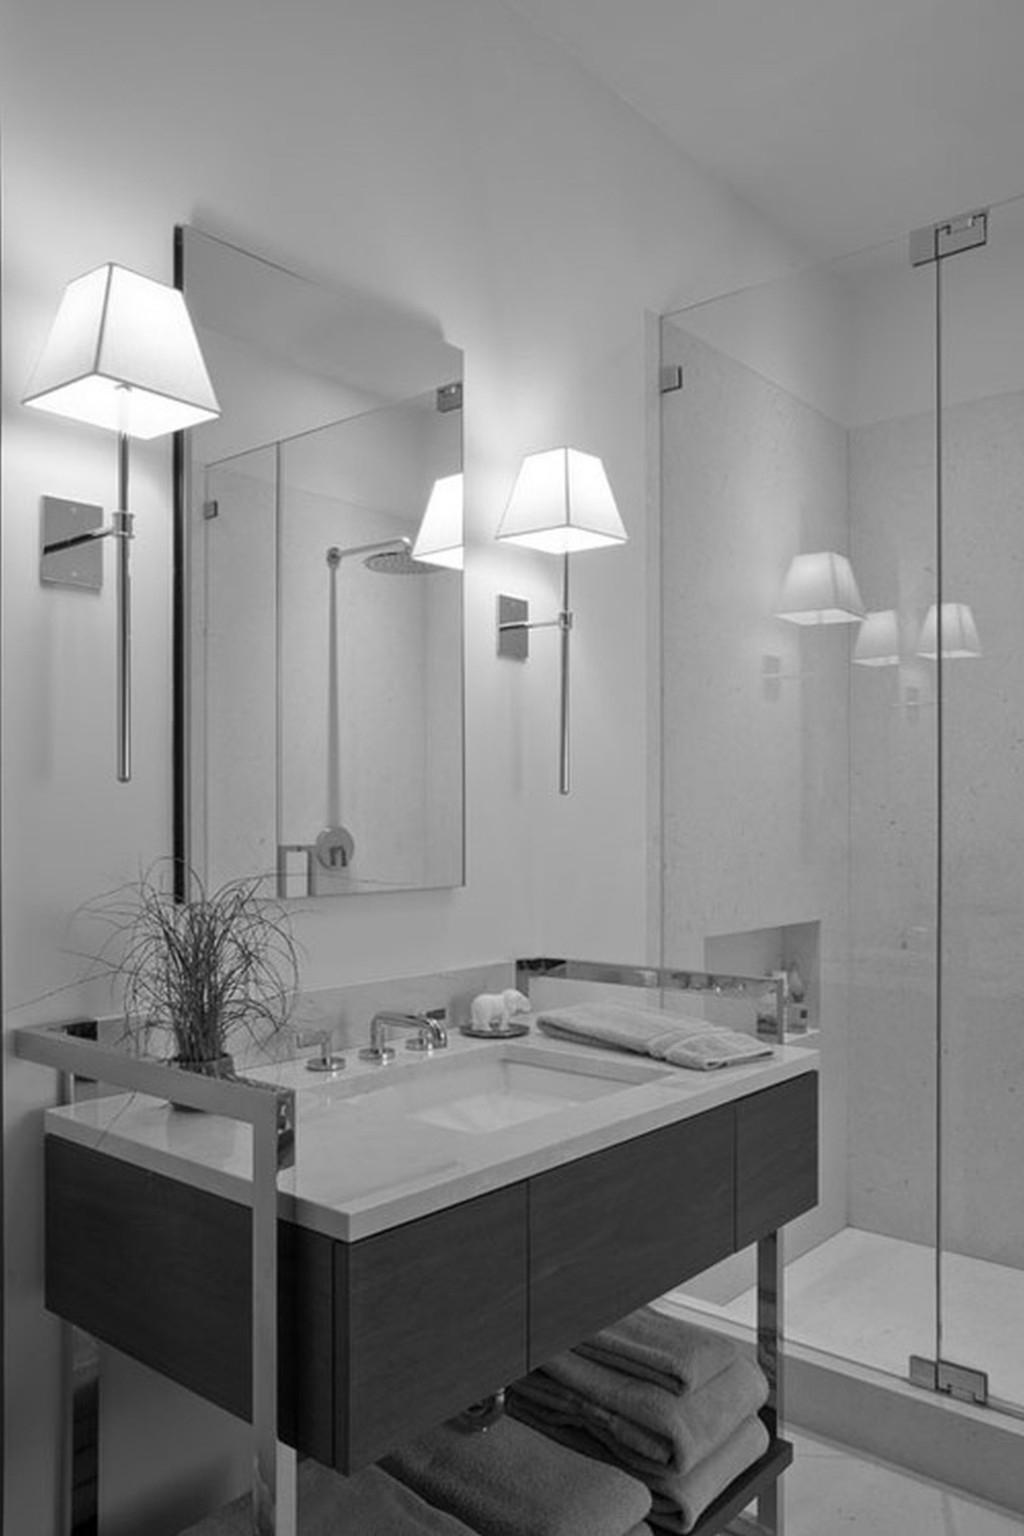 Permalink to Bathroom Mirror Wall Sconces